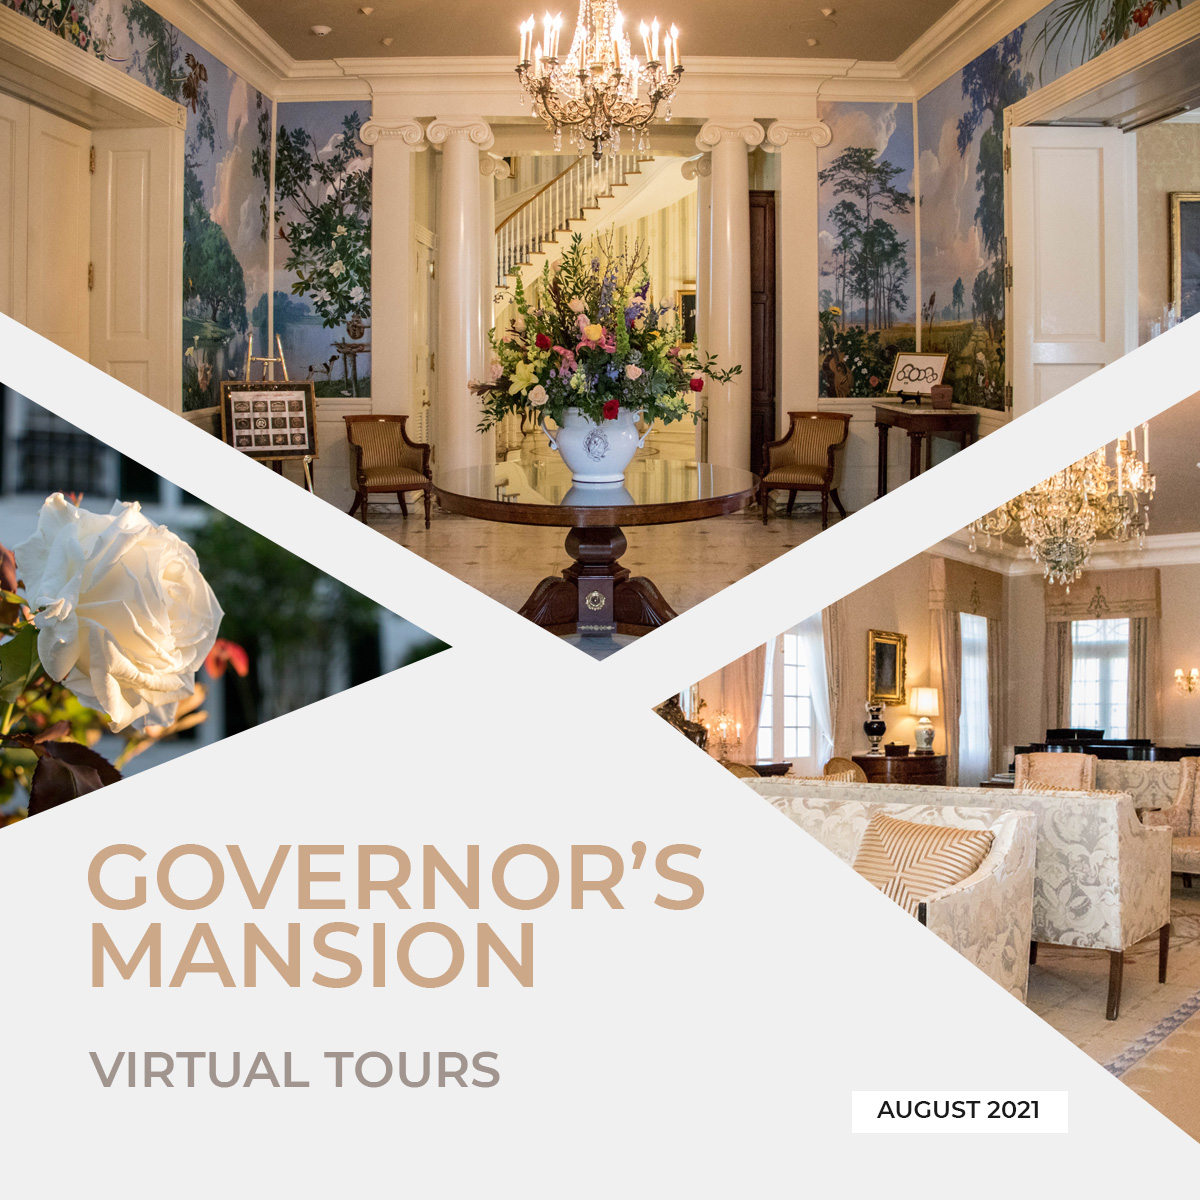 The Governor's Mansion: Virtual Tours